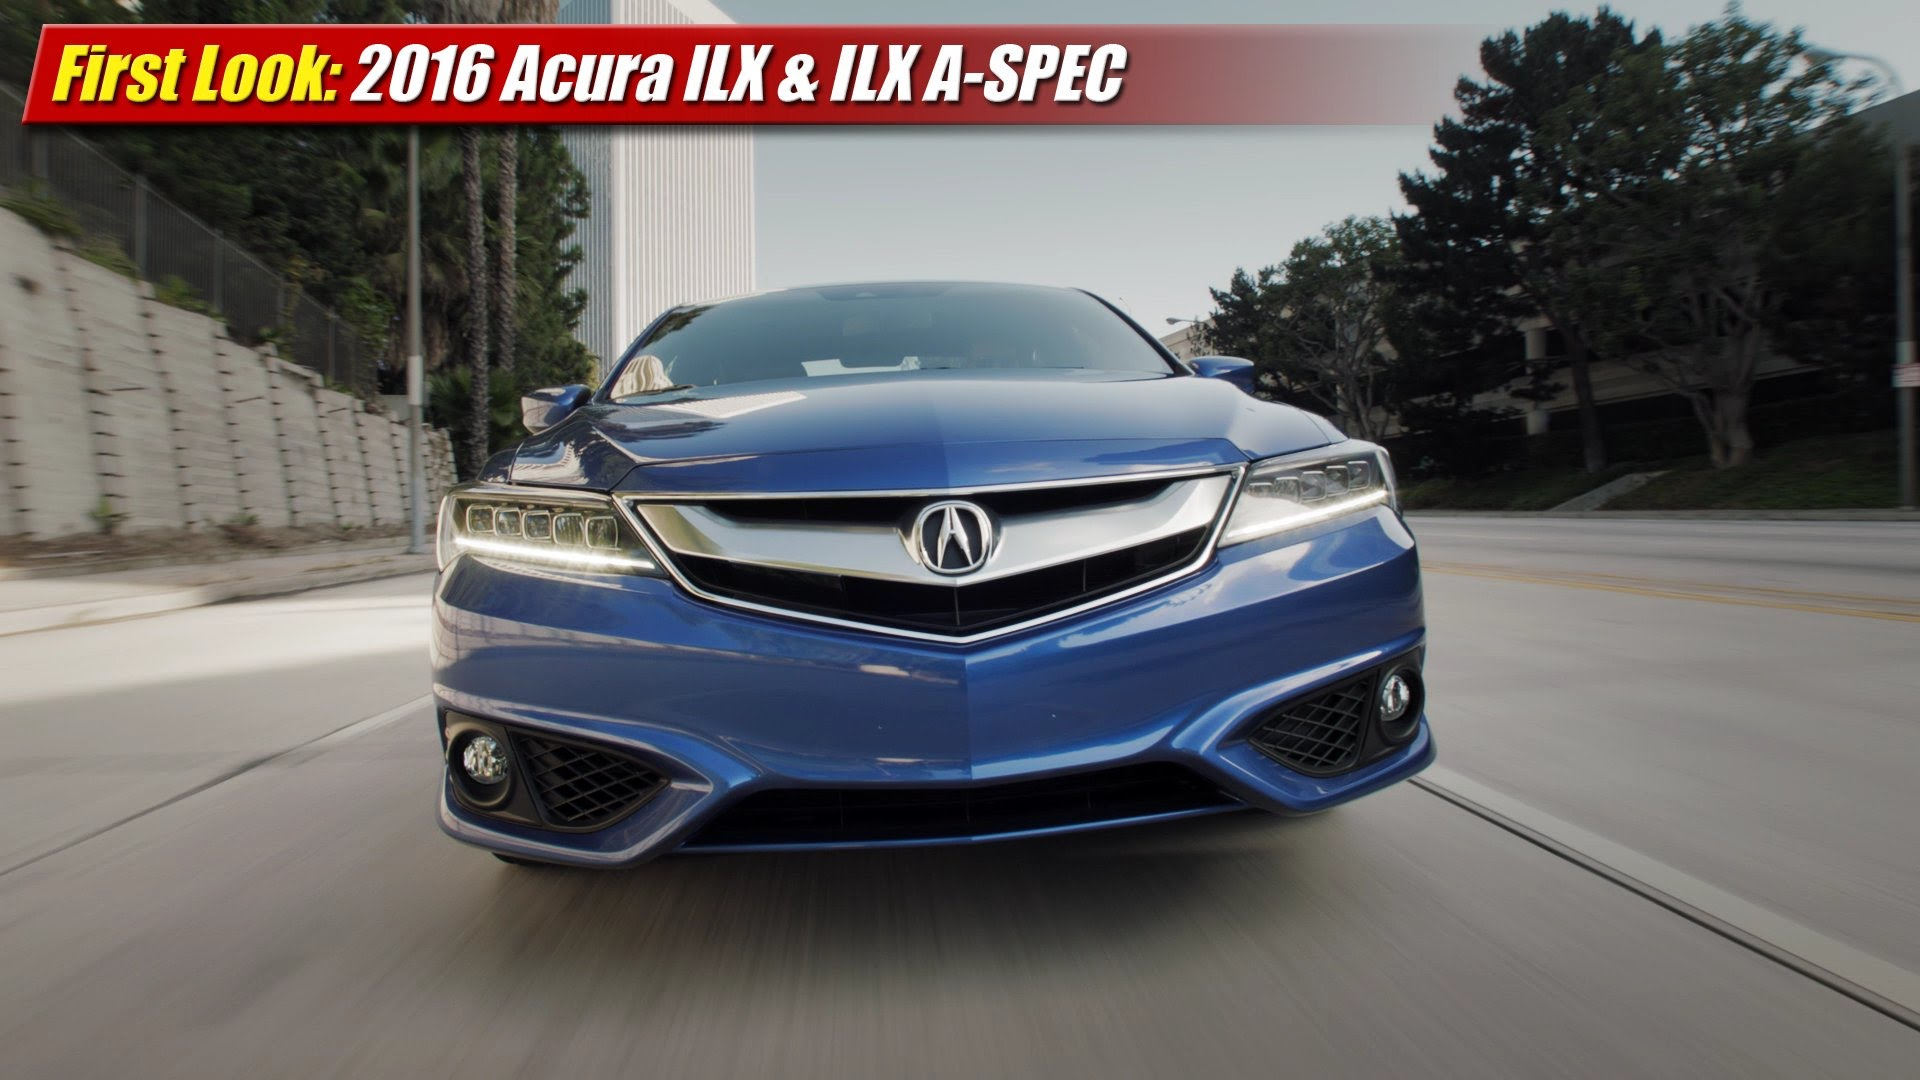 First Look: 2016 Acura ILX & ILX A-SPEC - TestDriven.TV